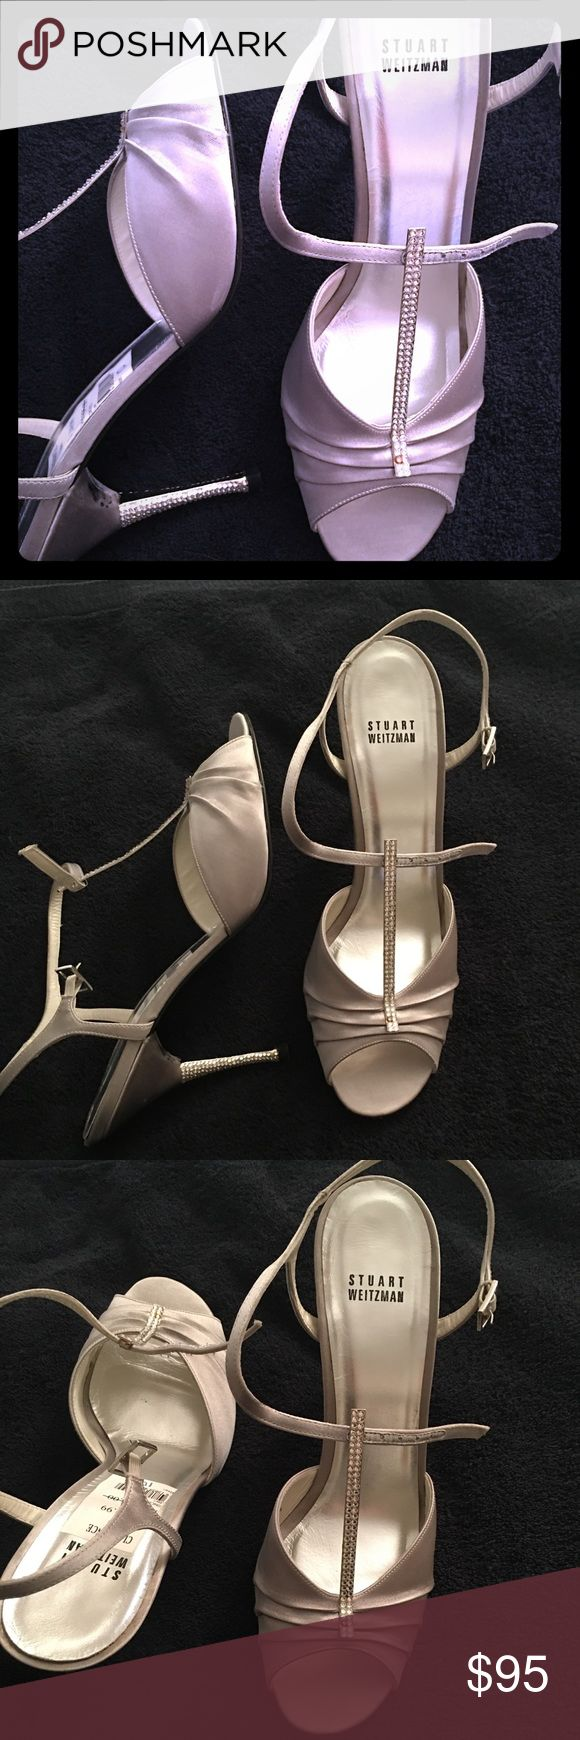 Stuart Weitzman Silver Rhinestone T-Strap Heels Stuart Weitzman Silver Silk & Rhinestone T-Strap Heels, size 10.  Possibly worn once.  A couple missing rhinestones on left t-strap.  Please see pics for any signs of wear.   Feel free to ask me any questions. Stuart Weitzman Shoes Heels